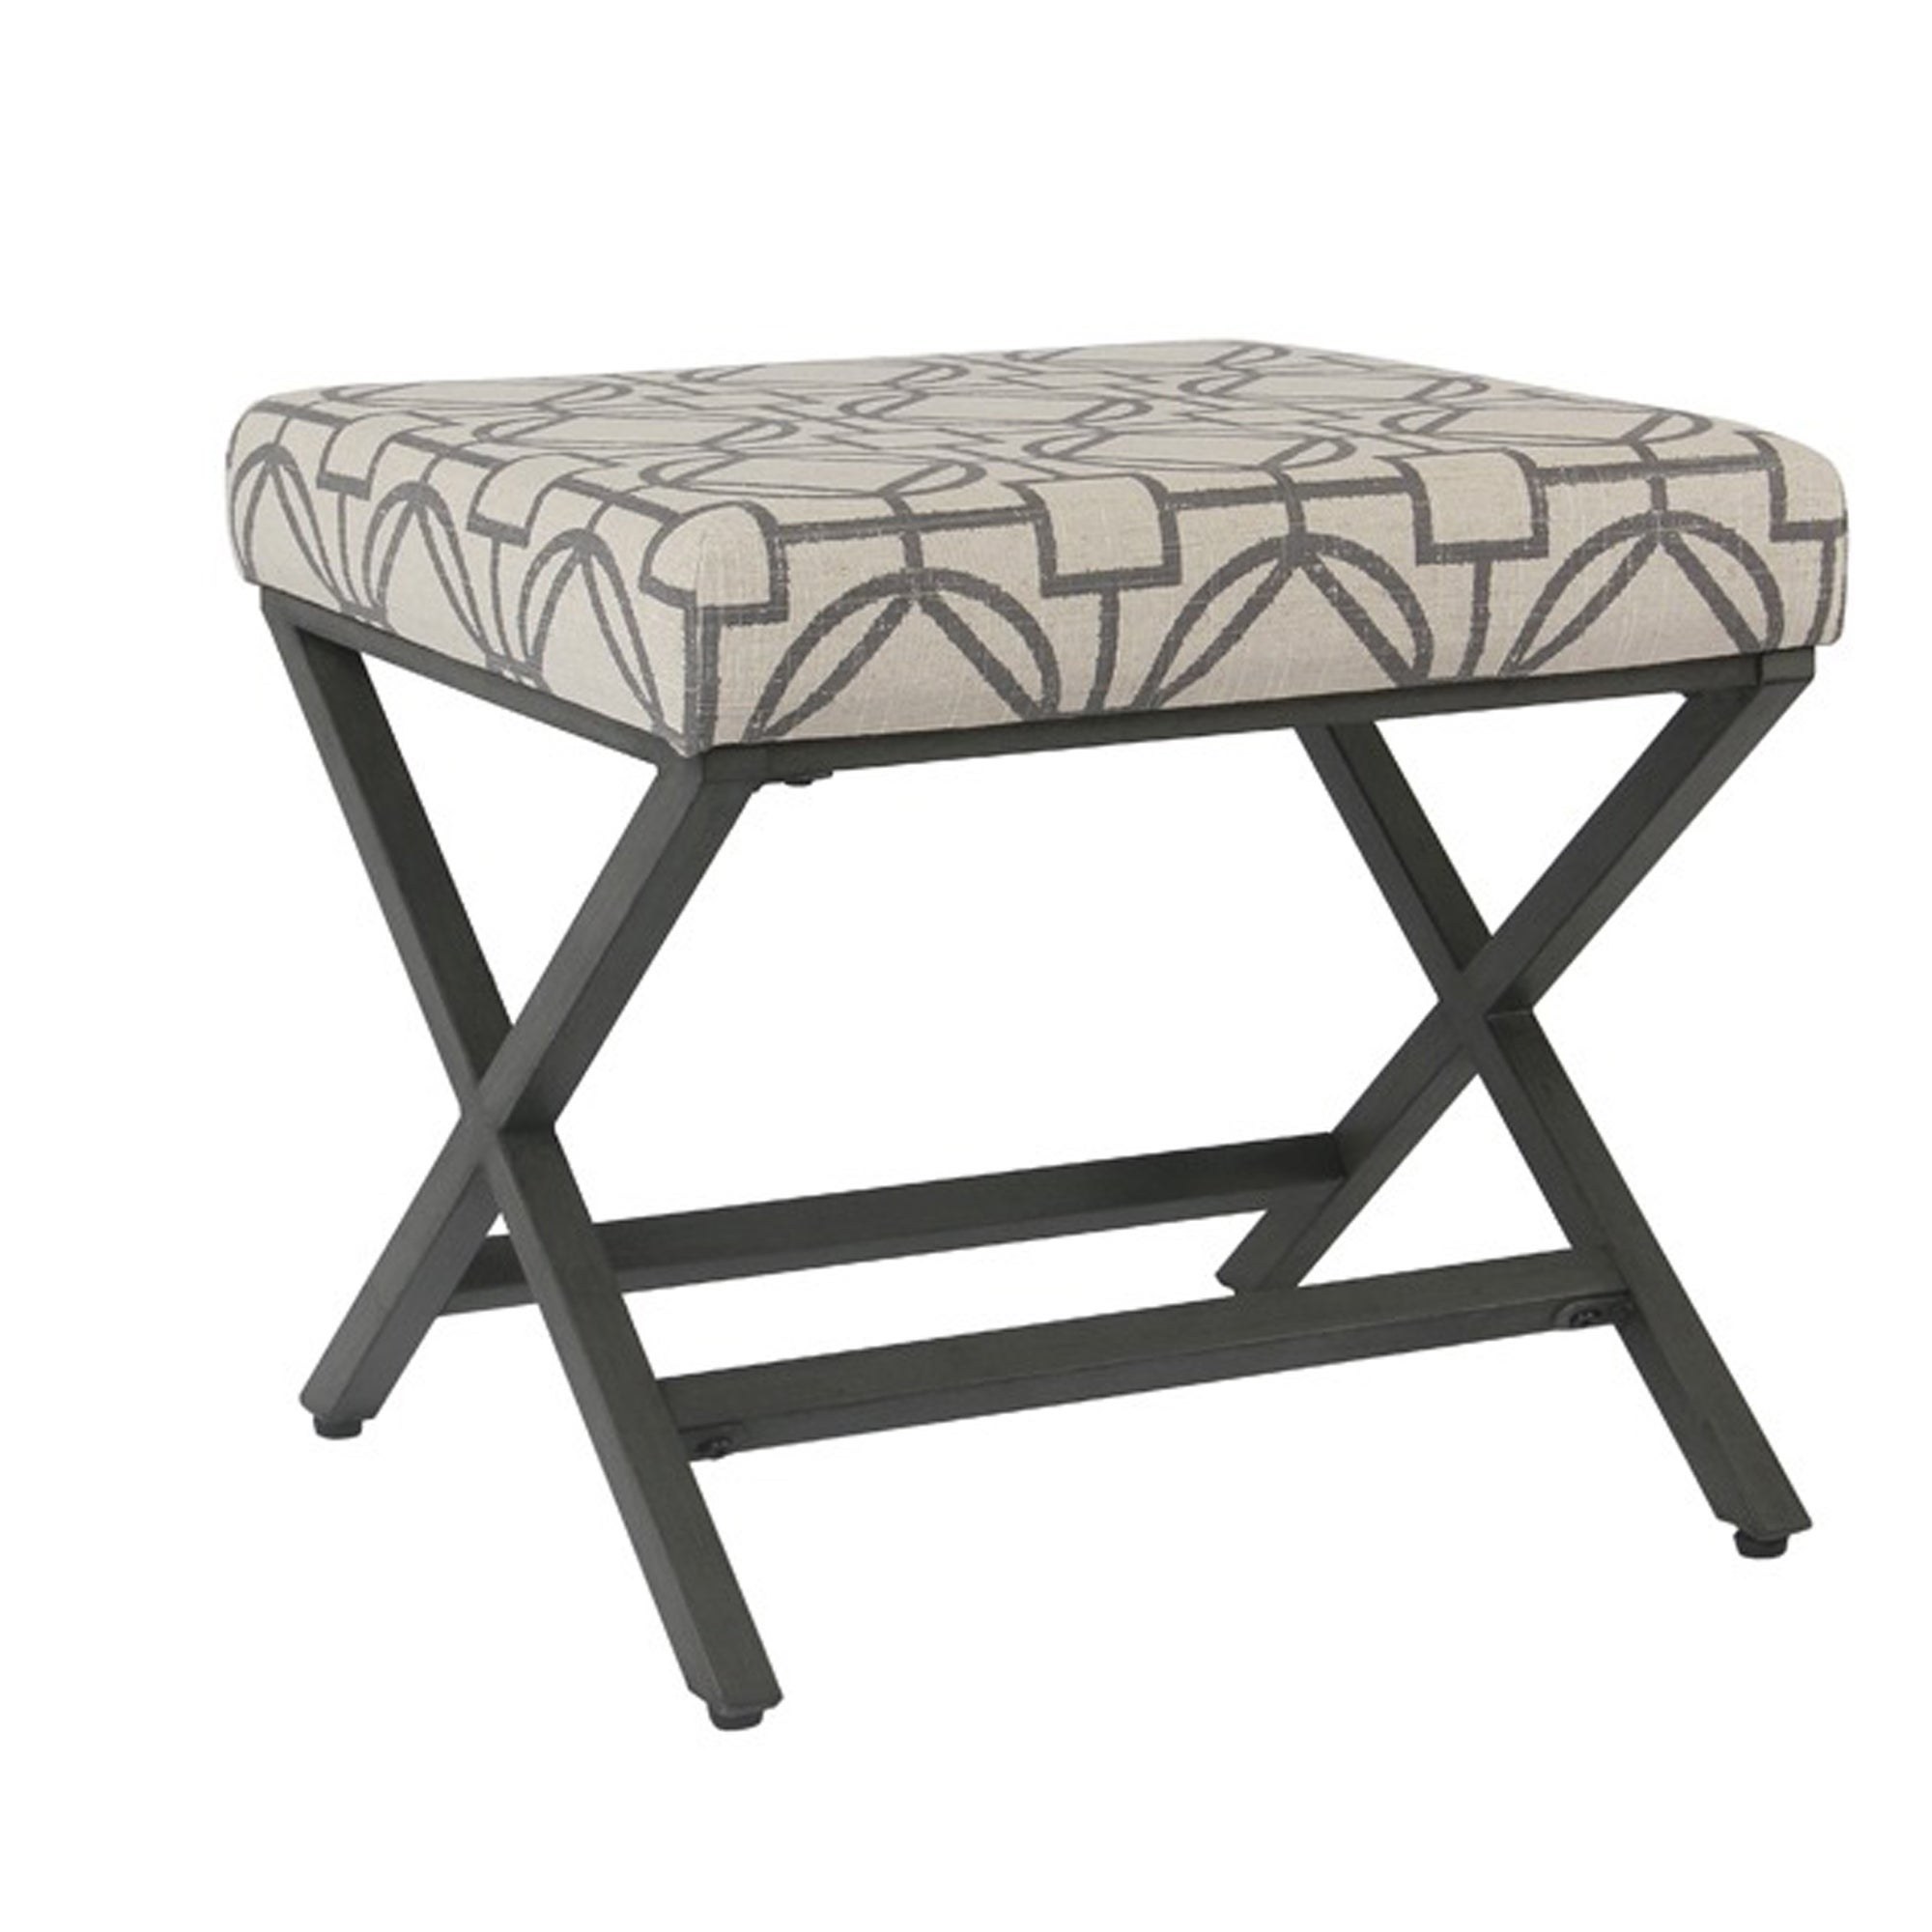 Excellent Patterned Fabric Upholstered Ottoman With X Shape Metal Legs Bralicious Painted Fabric Chair Ideas Braliciousco